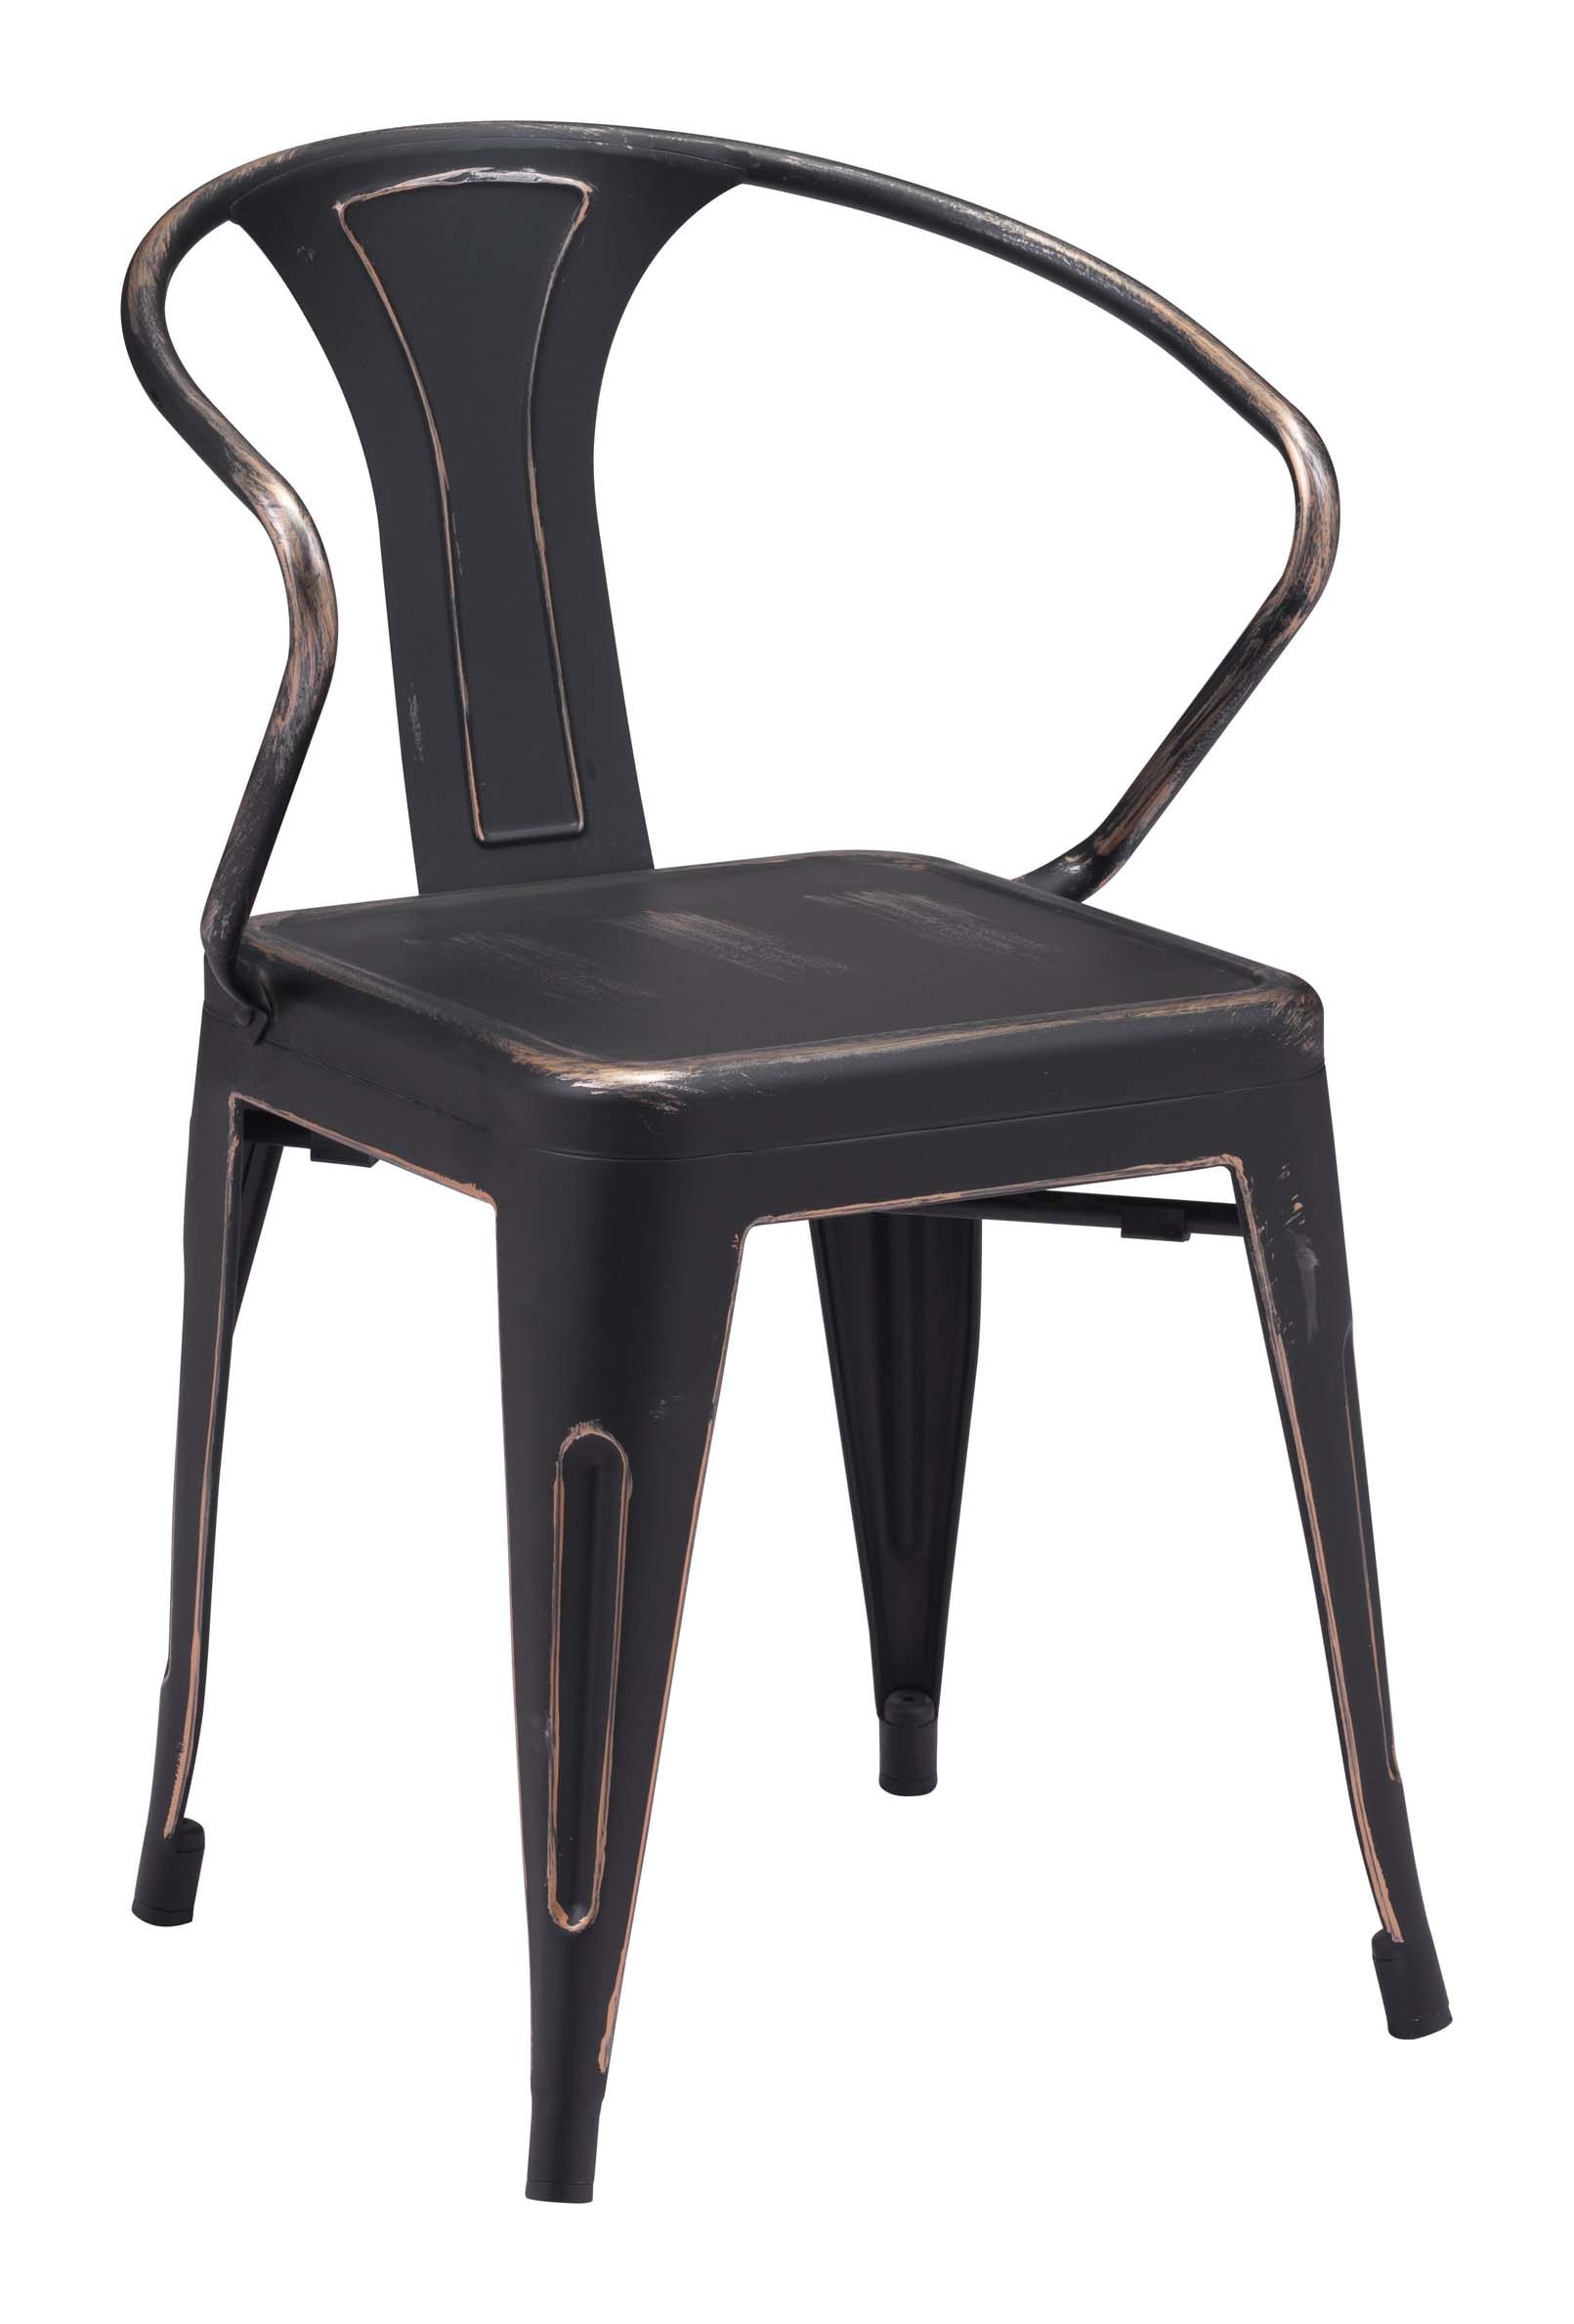 helix-dining-chair-antique-black-gold.jpg